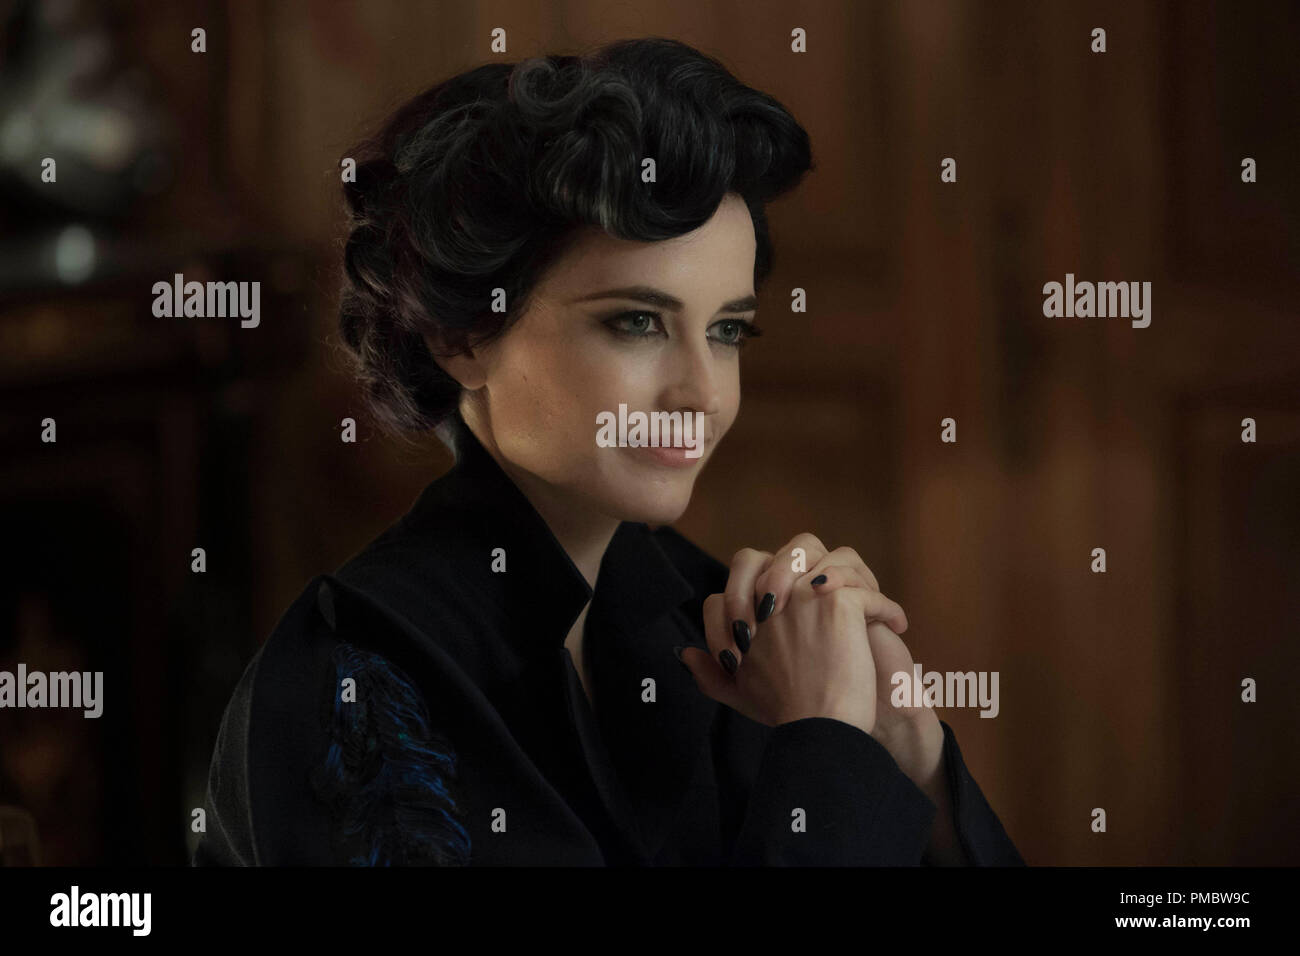 'Miss Peregrine's Home for Peculiar Children' (2016) Eva Green portrays Miss Peregrine, who oversees a magical place that is threatened by powerful enemies. - Stock Image